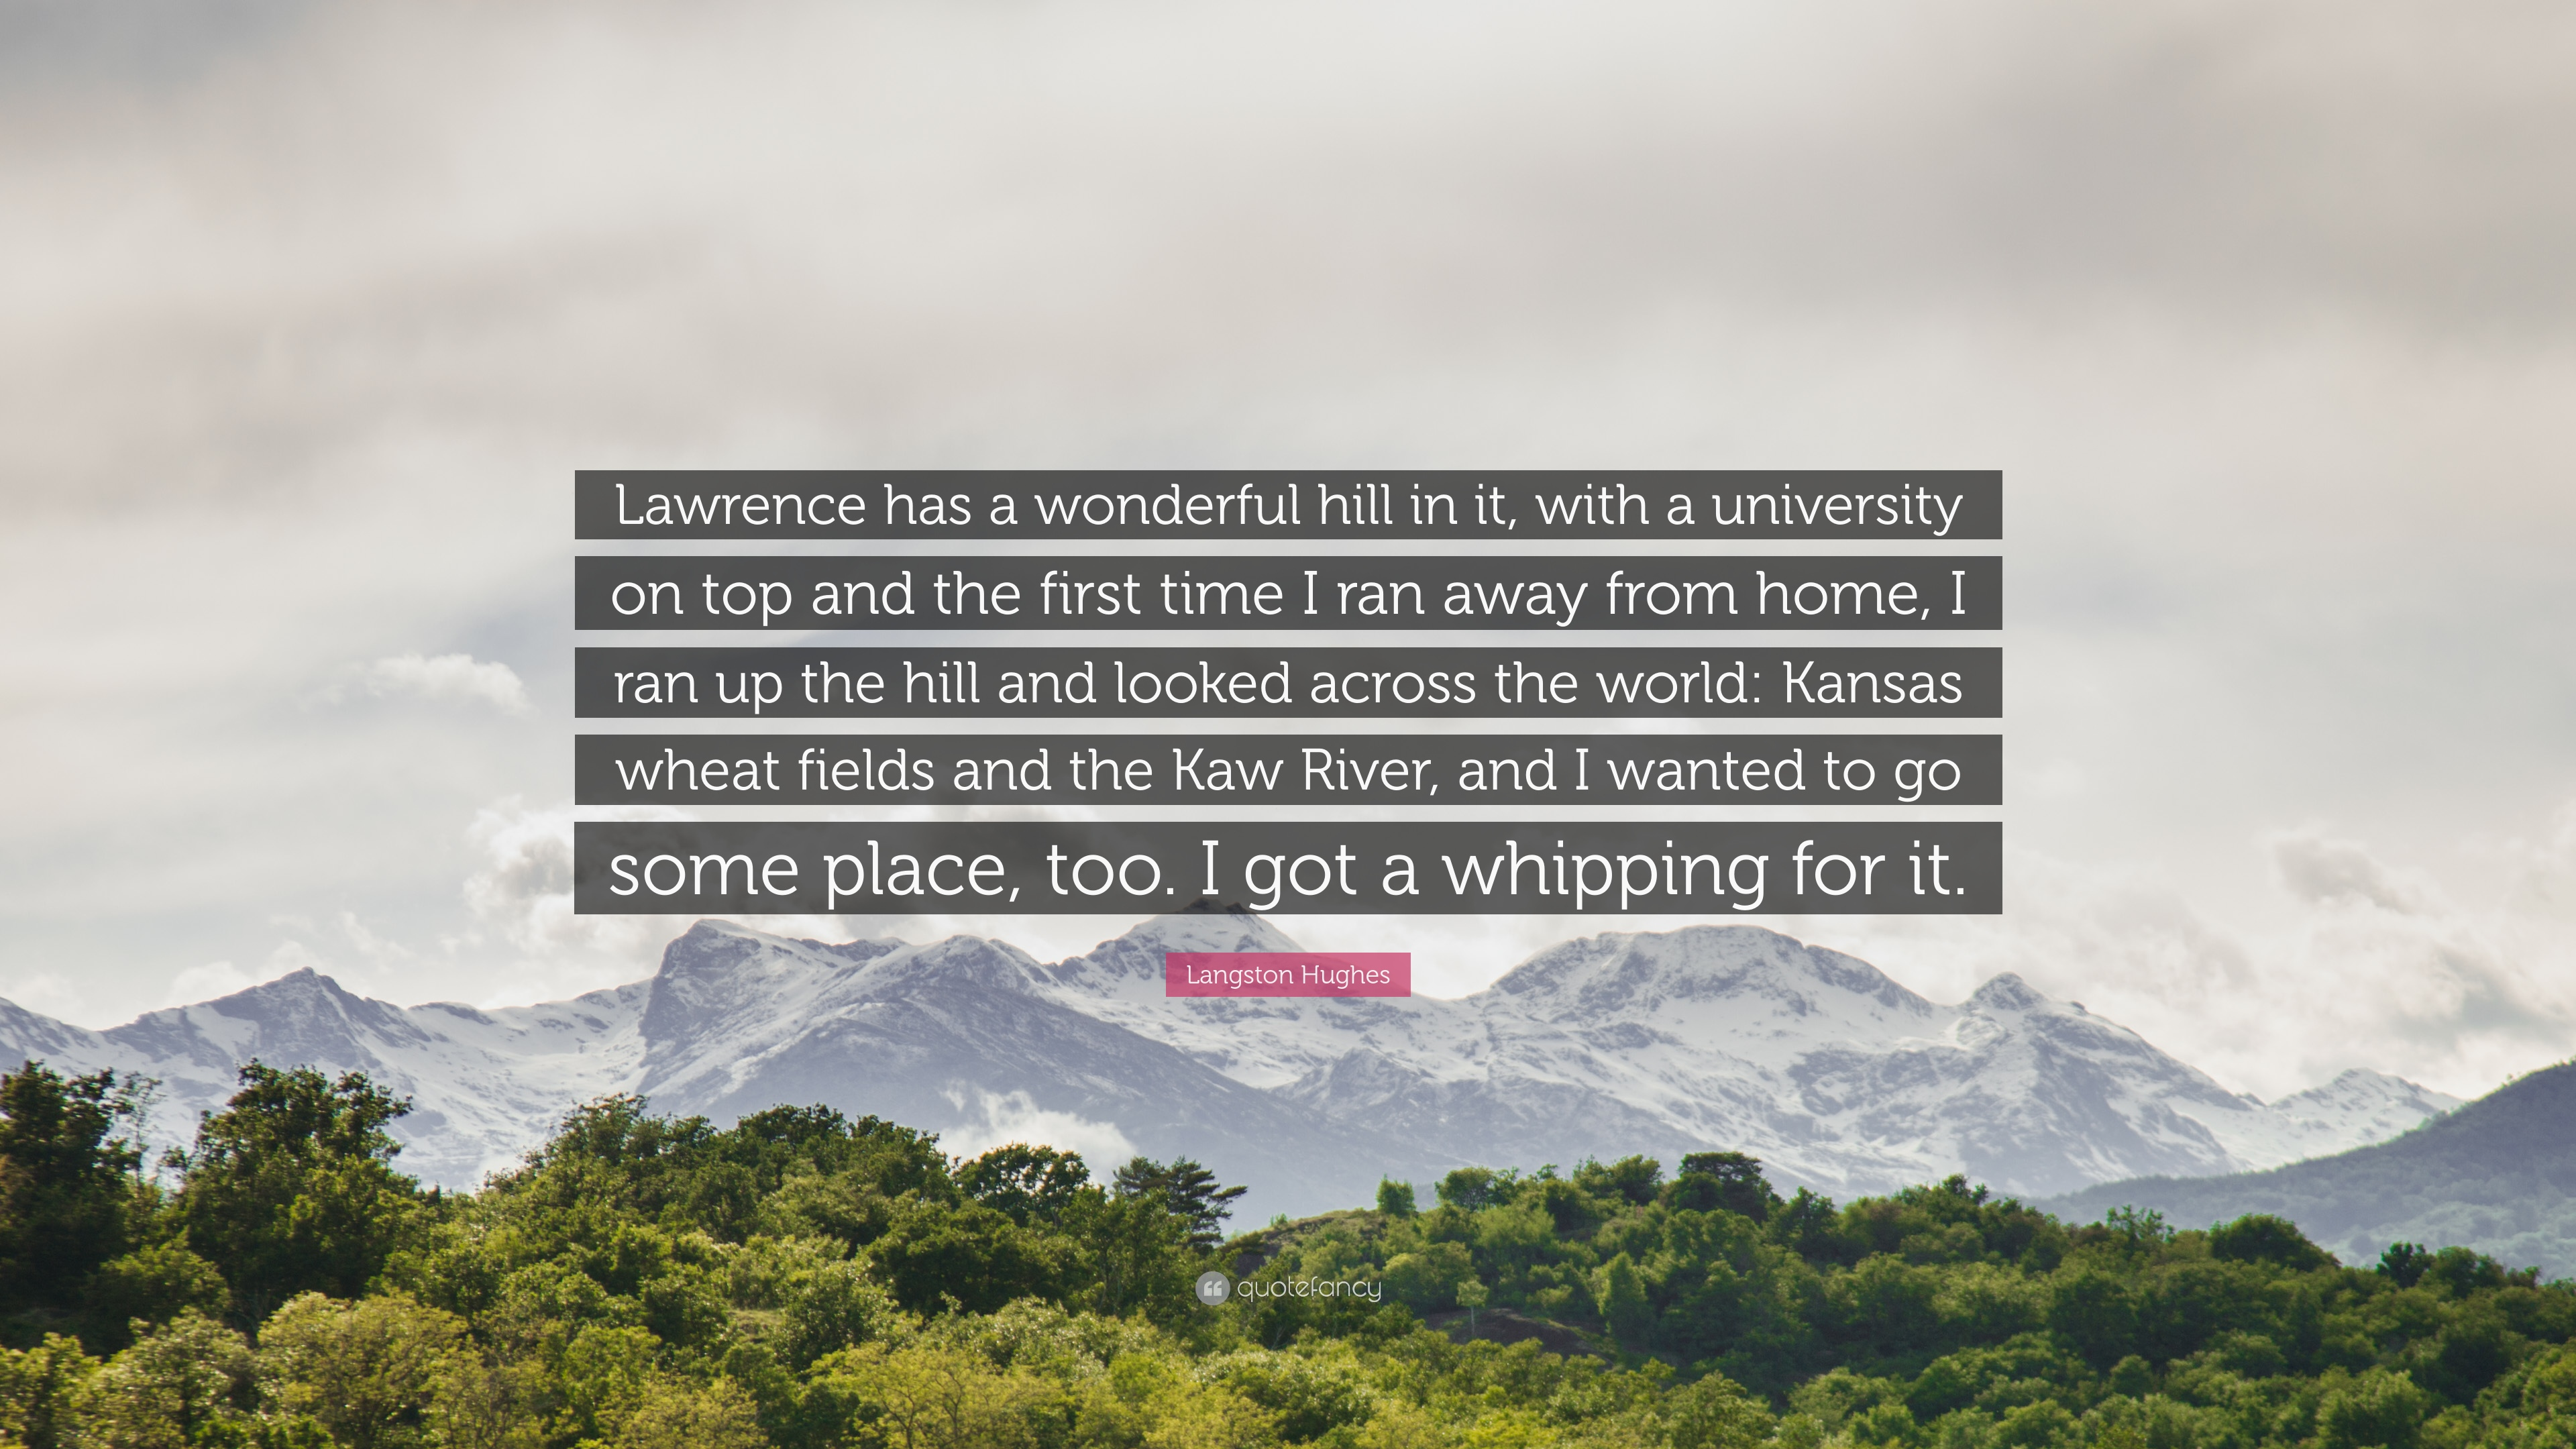 Famous quotes about Lawrence, Kansas?